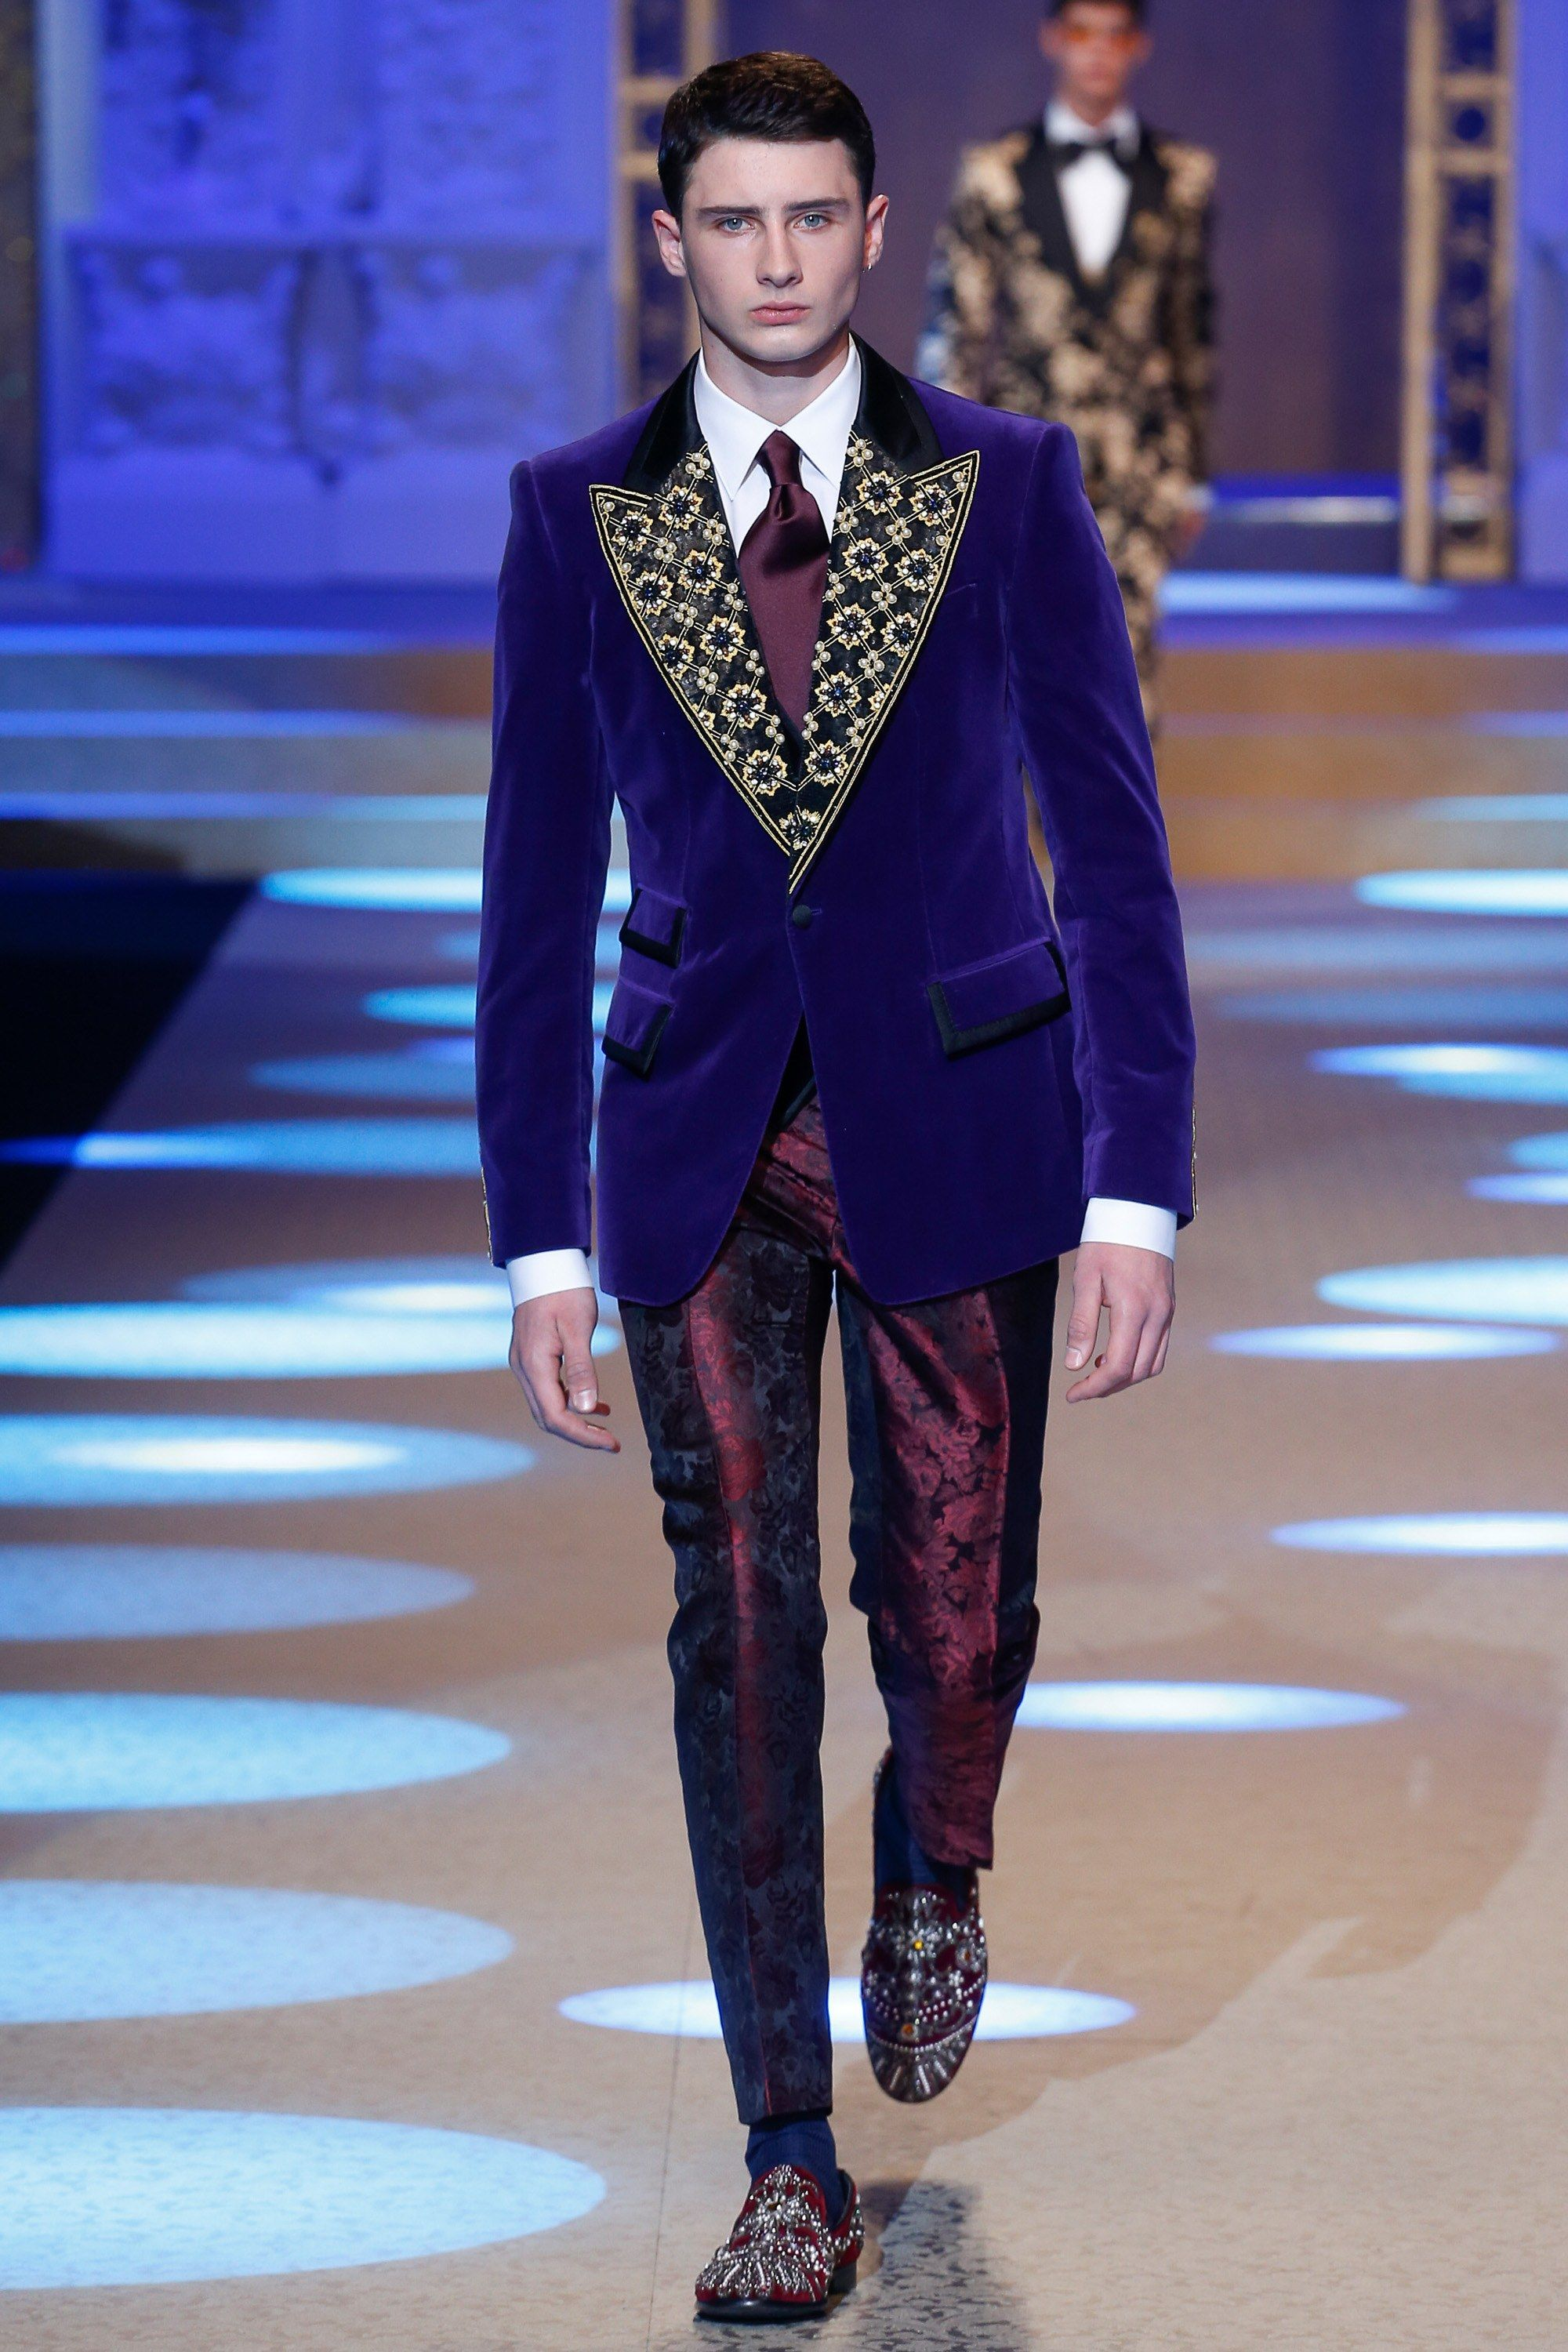 ec21465d Dolce & Gabbana Fall 2018 Menswear Fashion Show in 2019 | Menswear ...